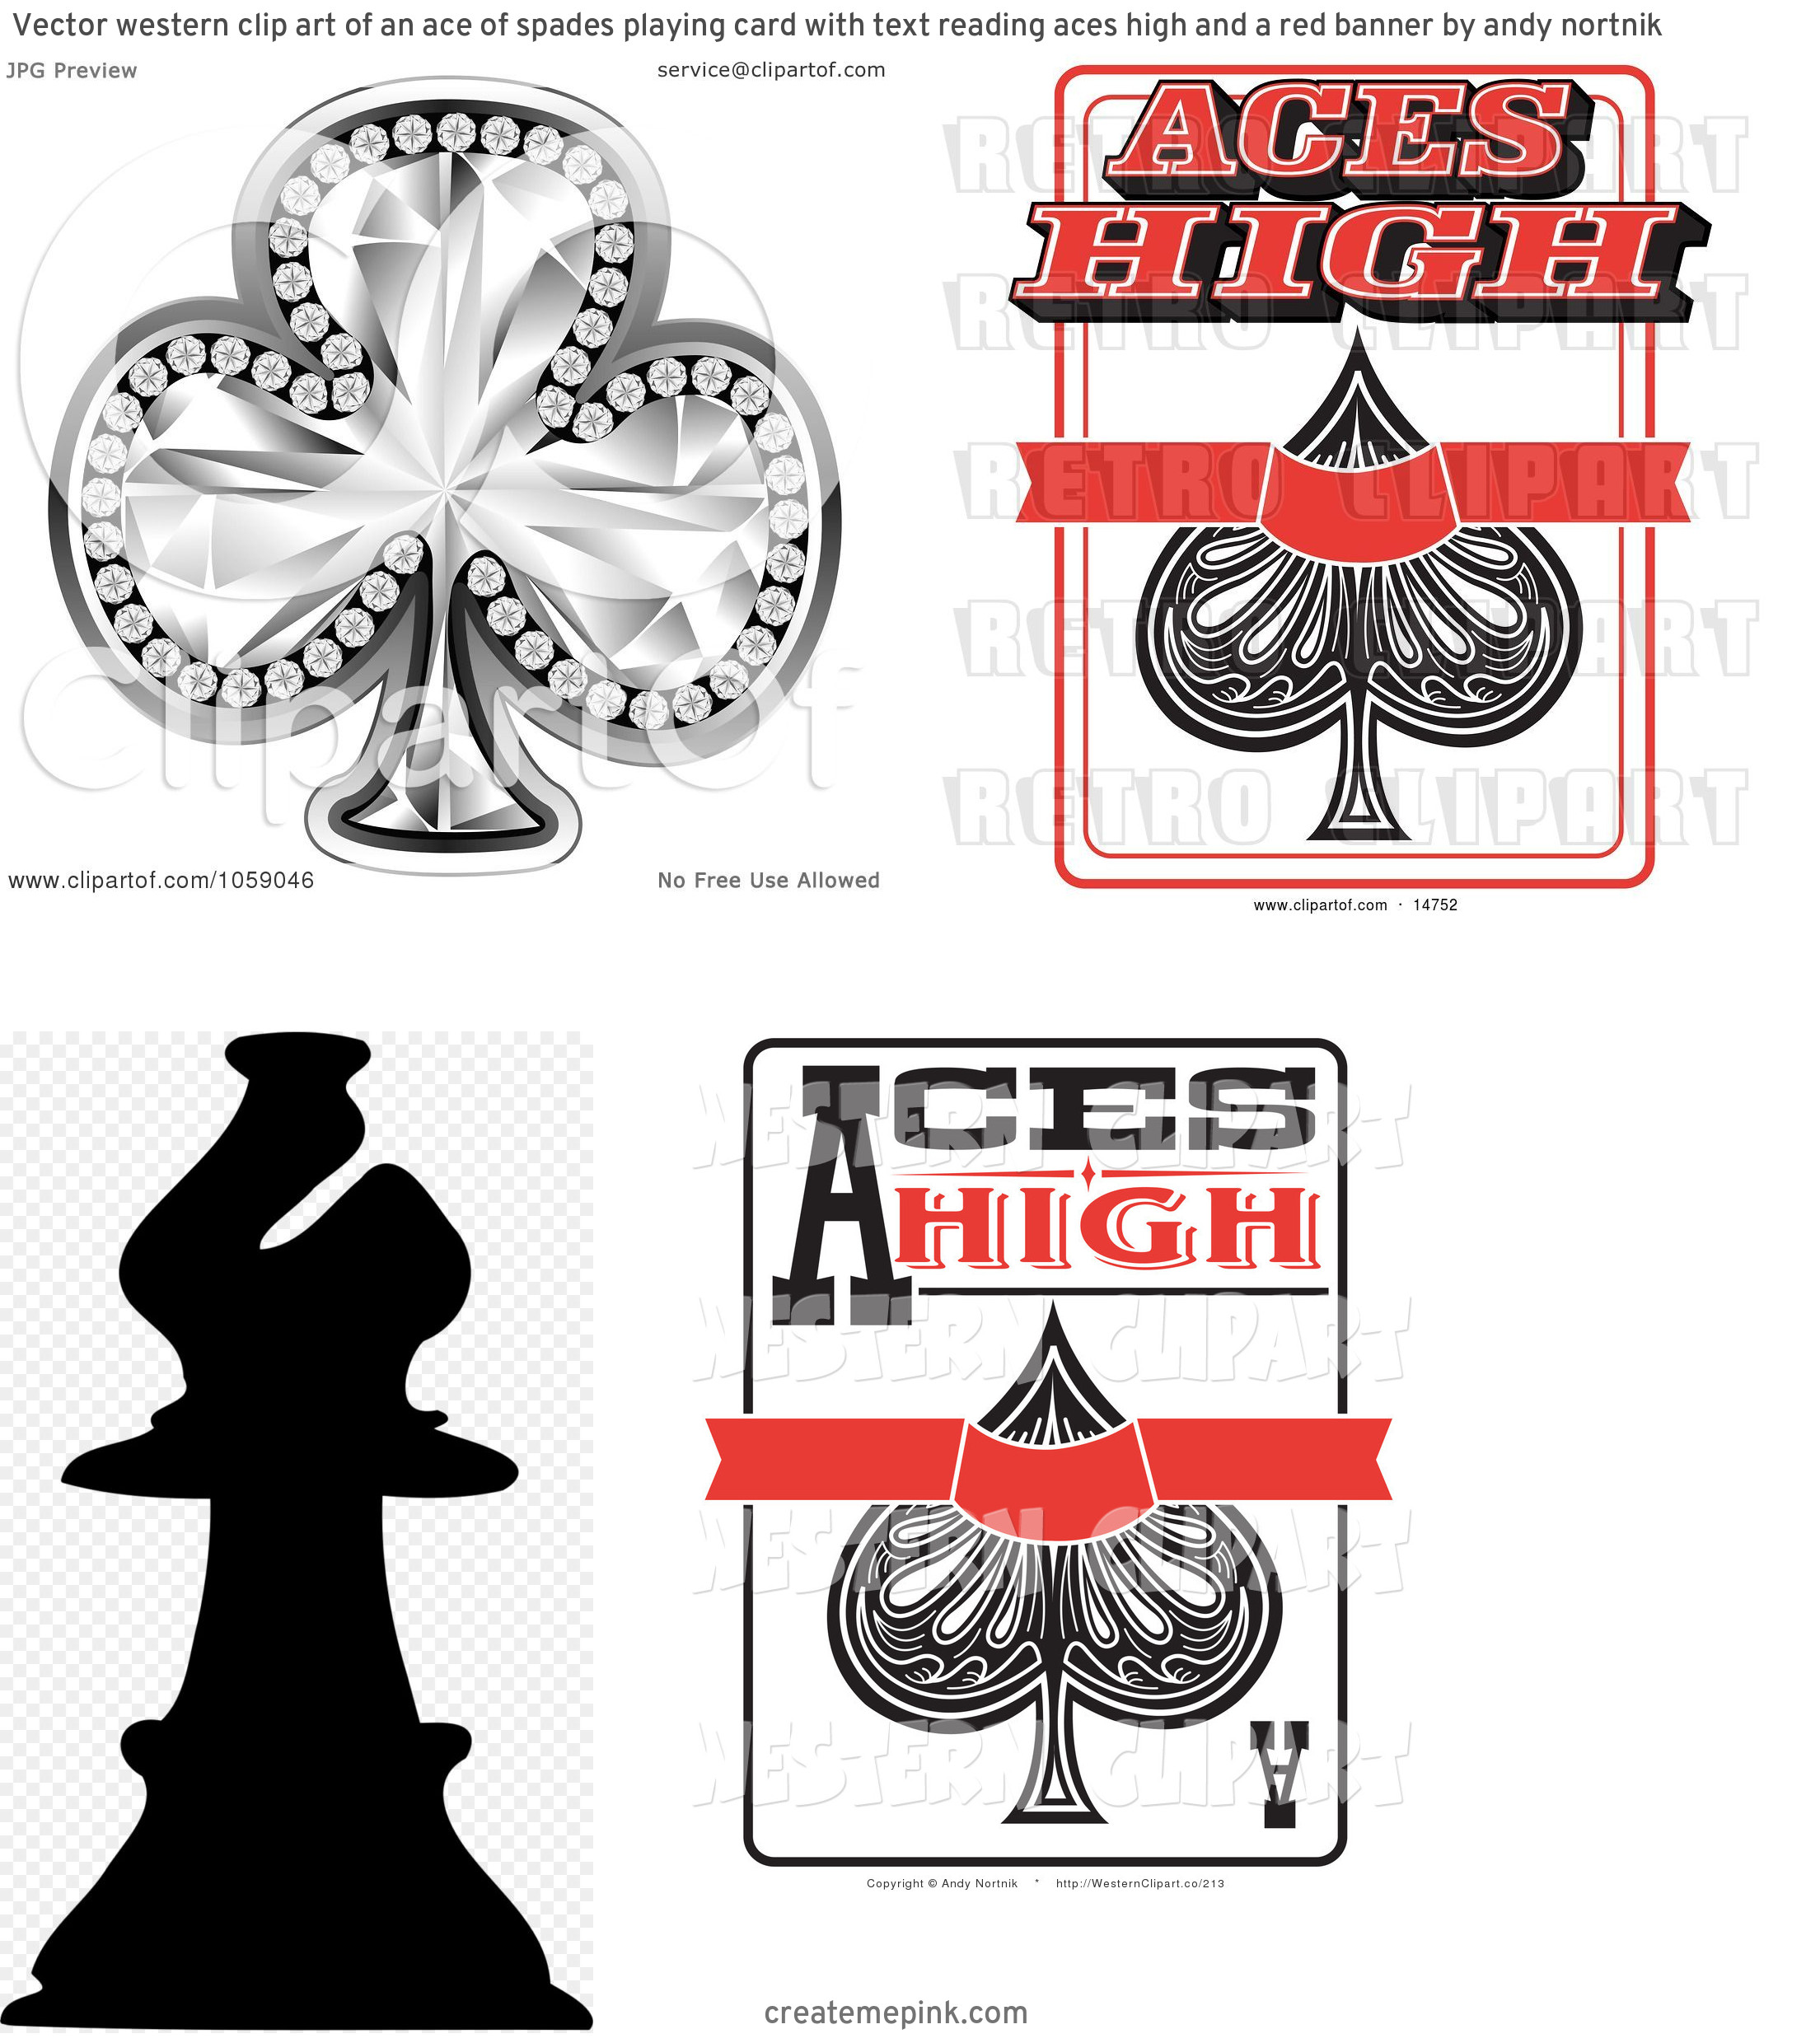 Spade Vector Clip Art: Vector Western Clip Art Of An Ace Of Spades Playing Card With Text Reading Aces High And A Red Banner By Andy Nortnik